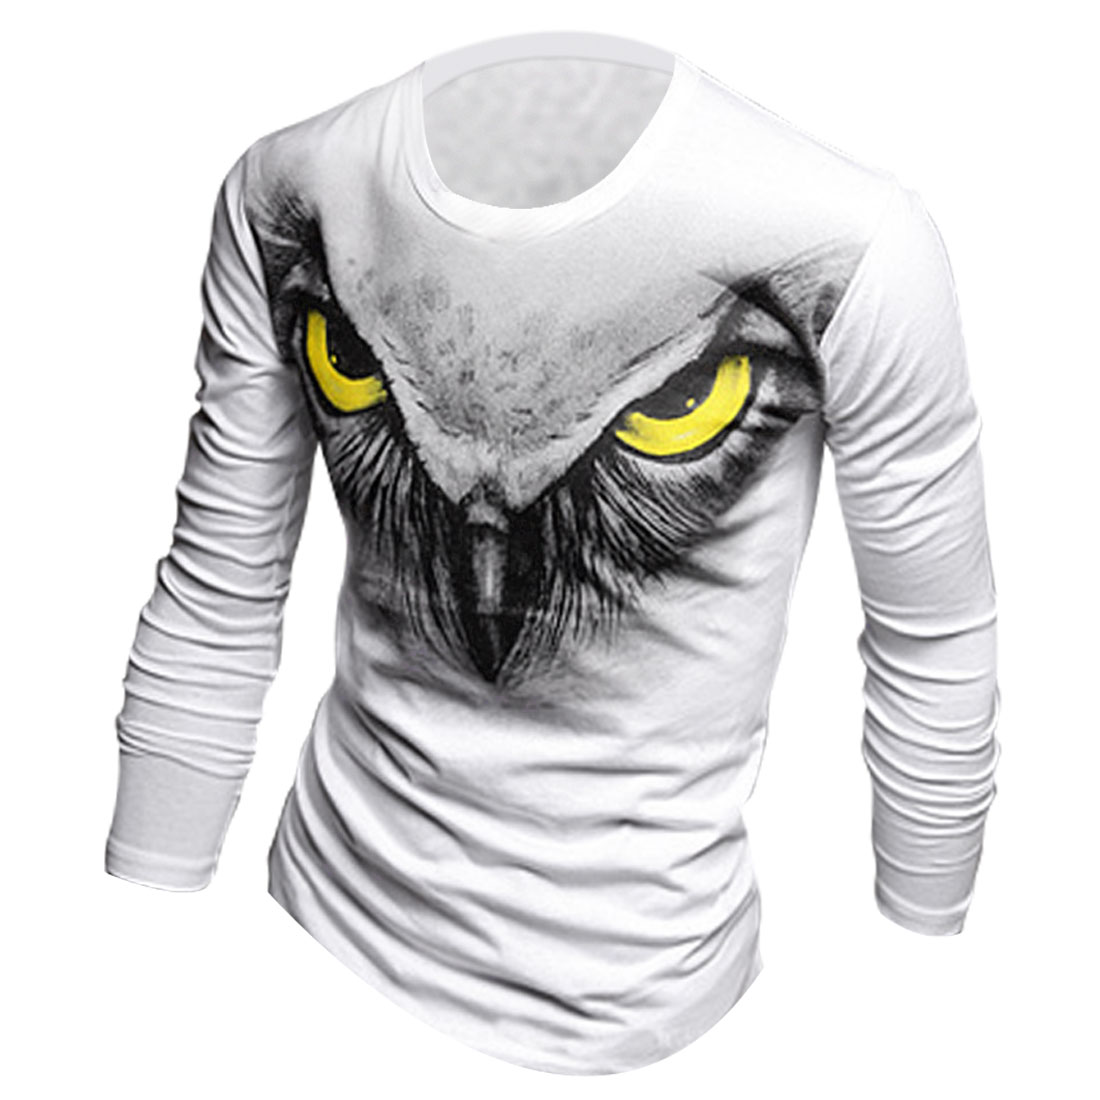 Pullover Stretchy Eagle Pattern Front White Casual T-Shirt for Man M